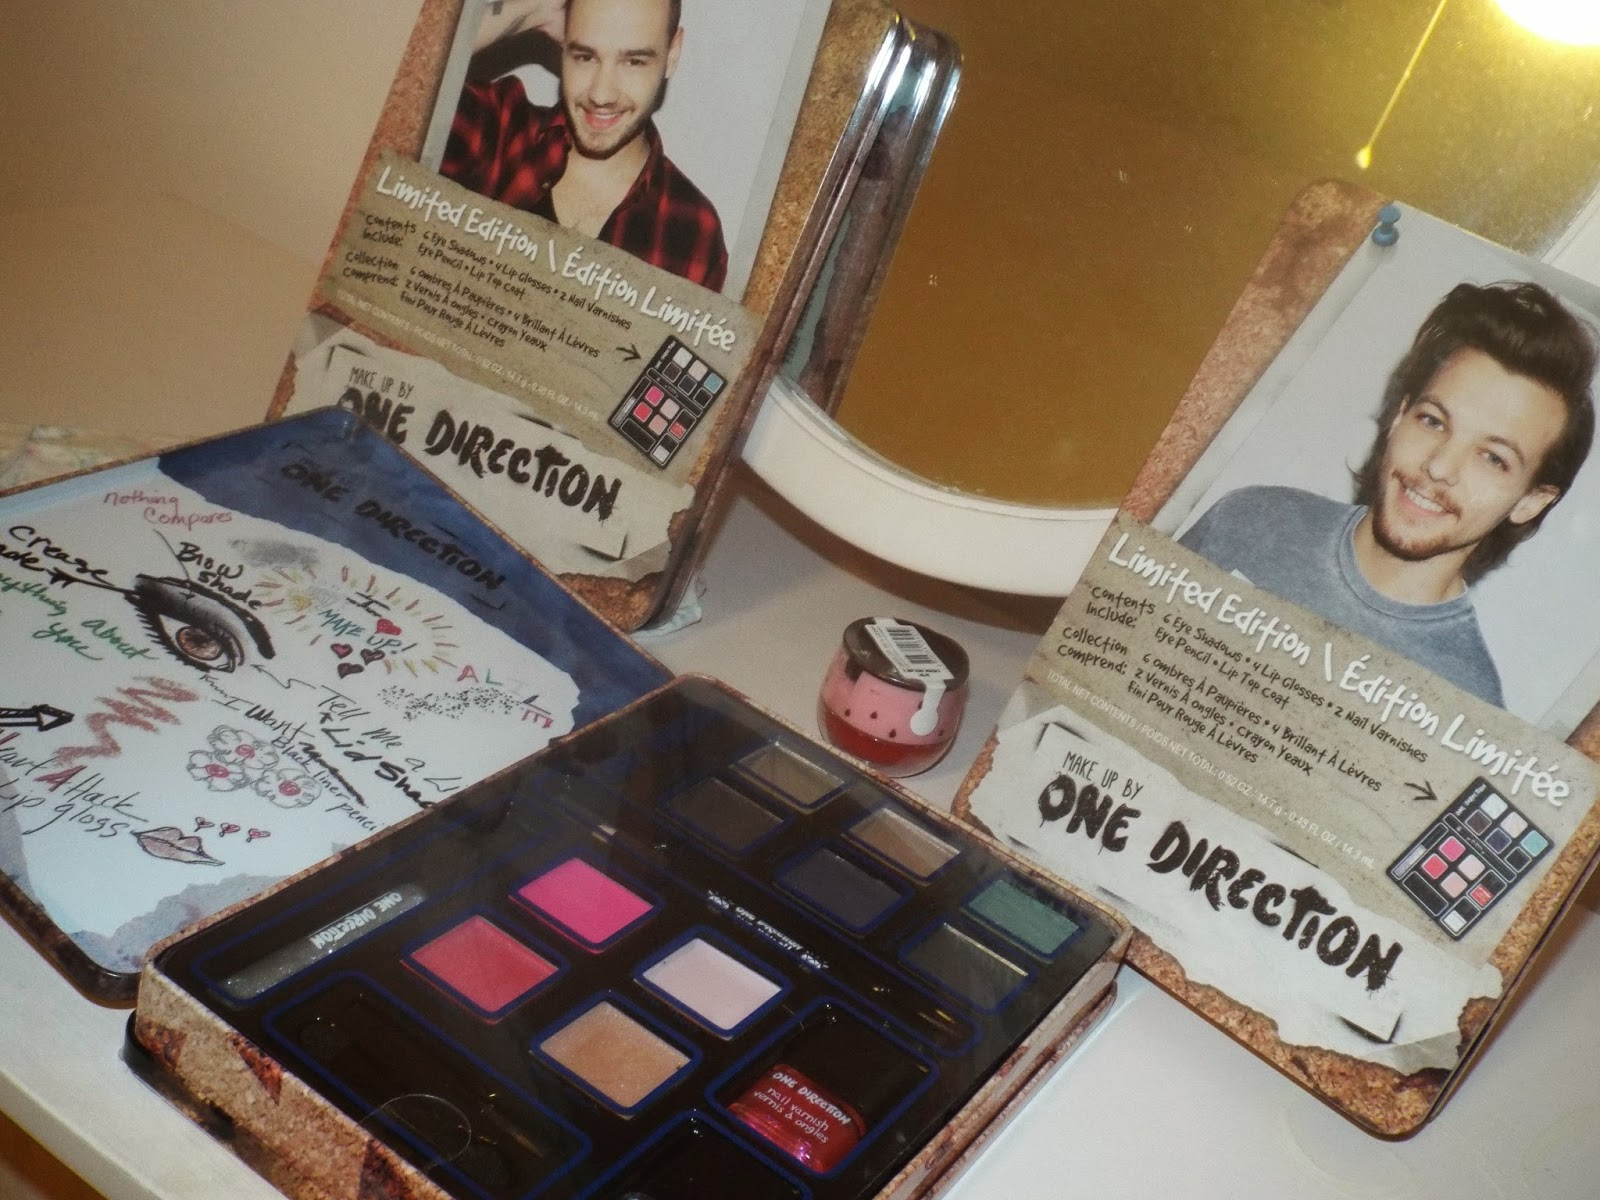 One Direction Limited Edition Tins